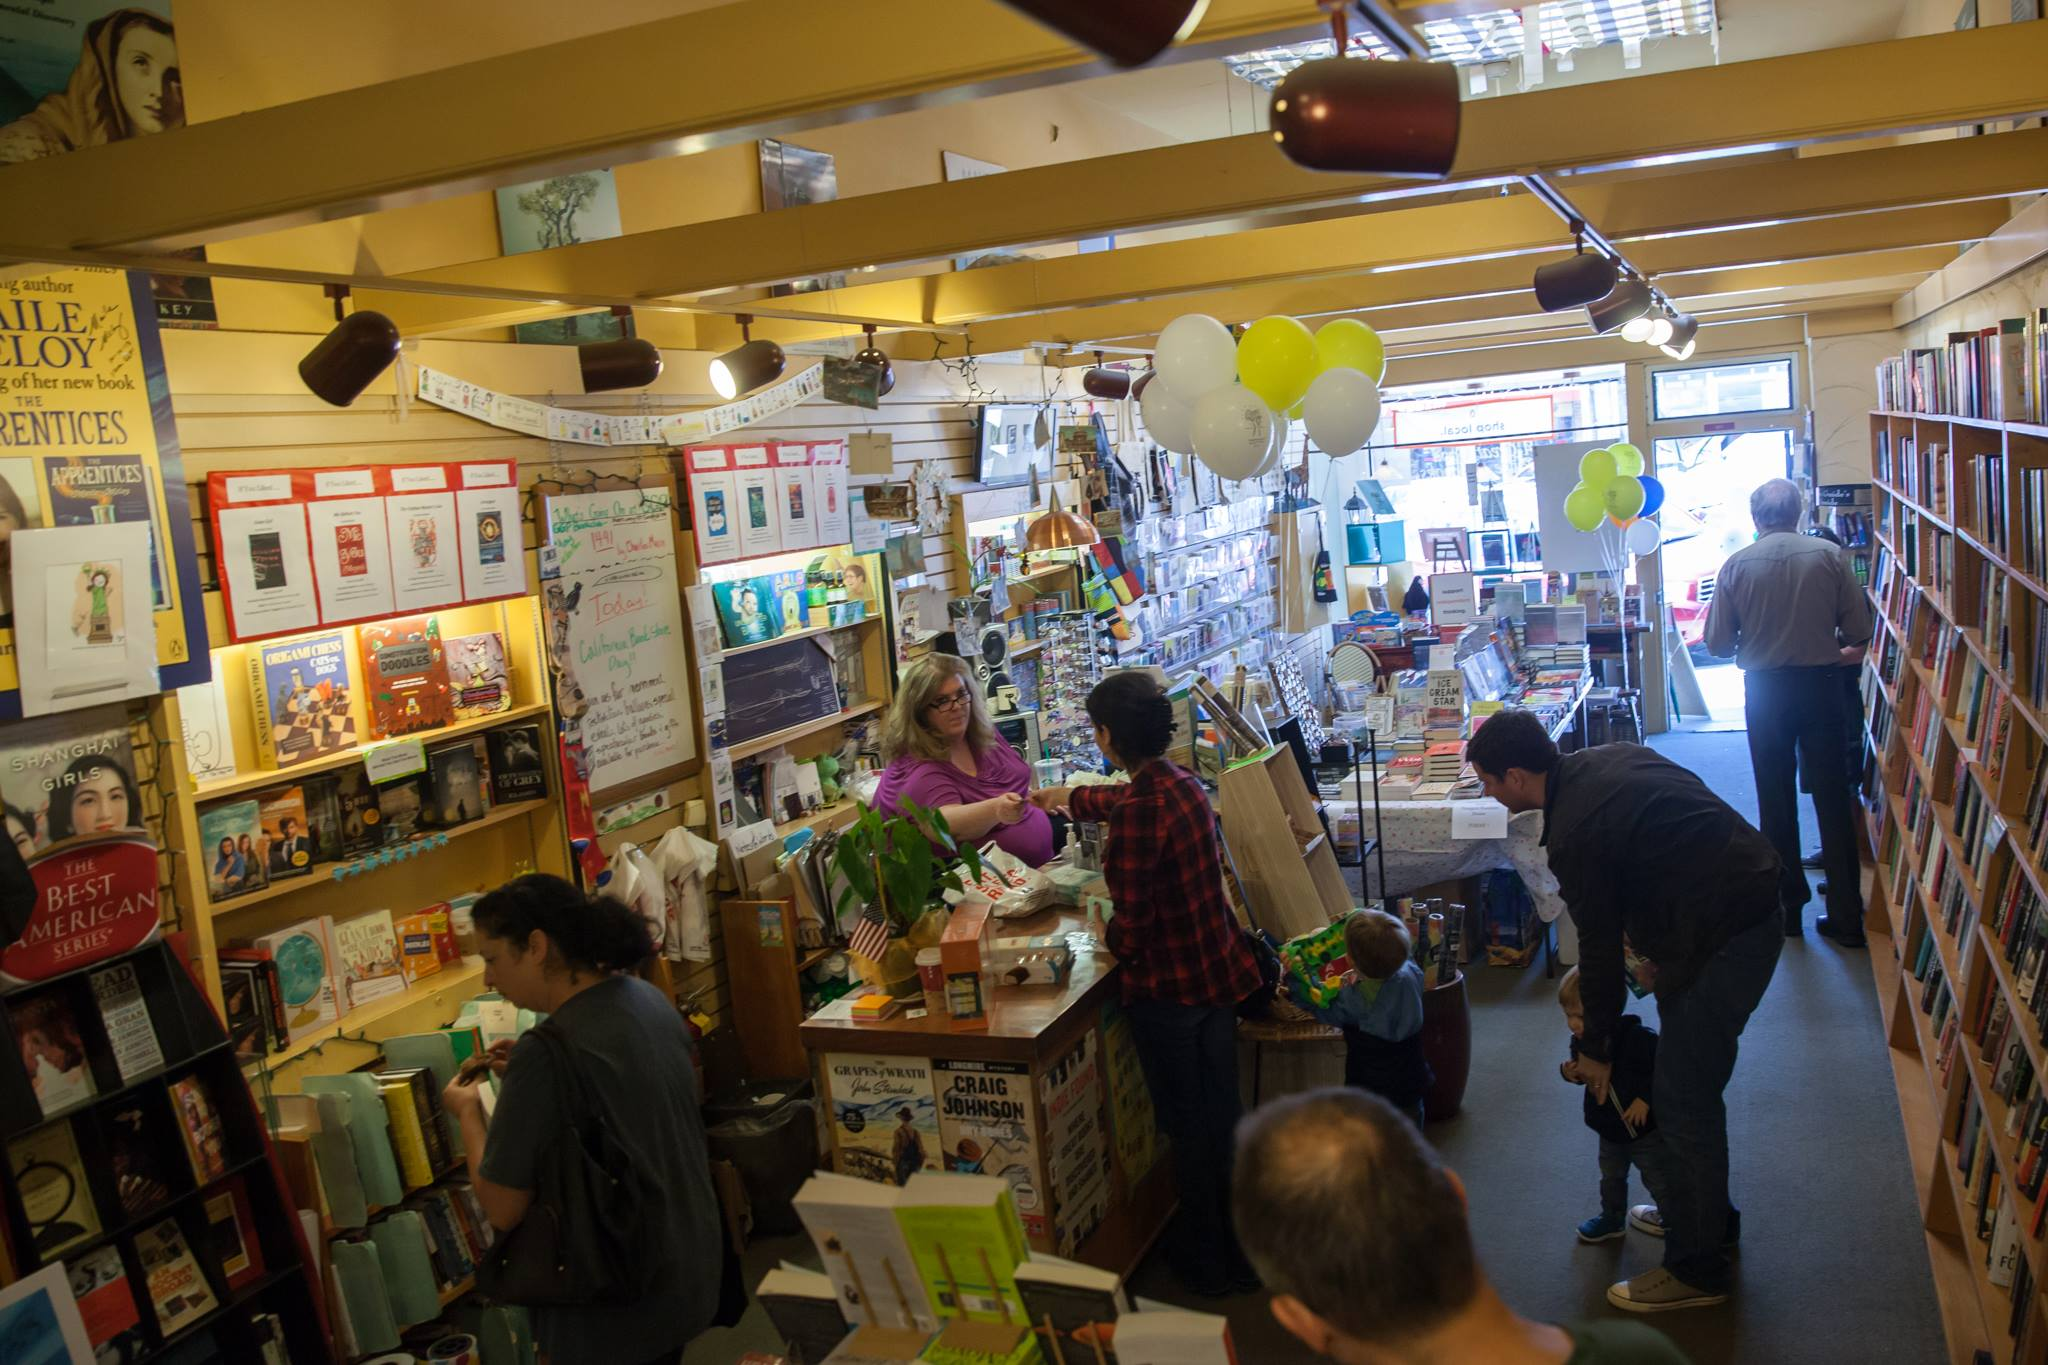 A Great Good Place For Books Prepares For Penguin Day